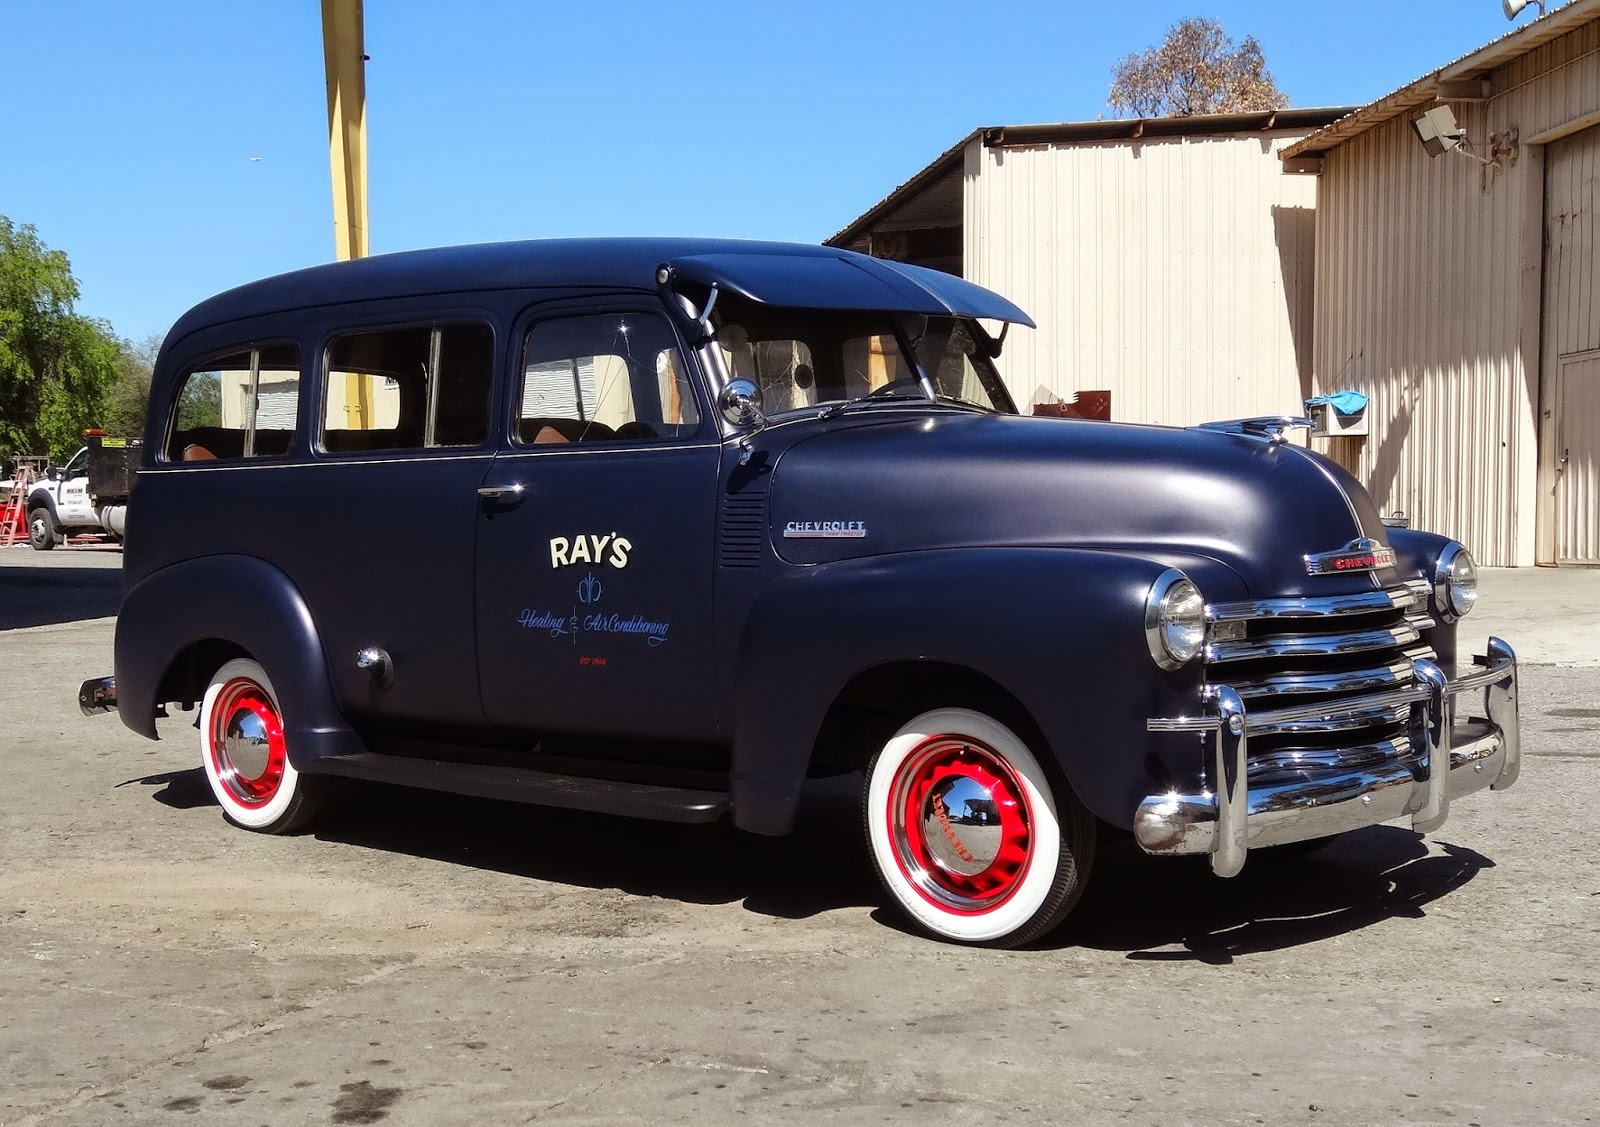 1950 Chevy Truck Artillery Wheels Lowrider With 1949 Patina Dual Advanced Design Pickups Slammed Both In Ratty Finishes